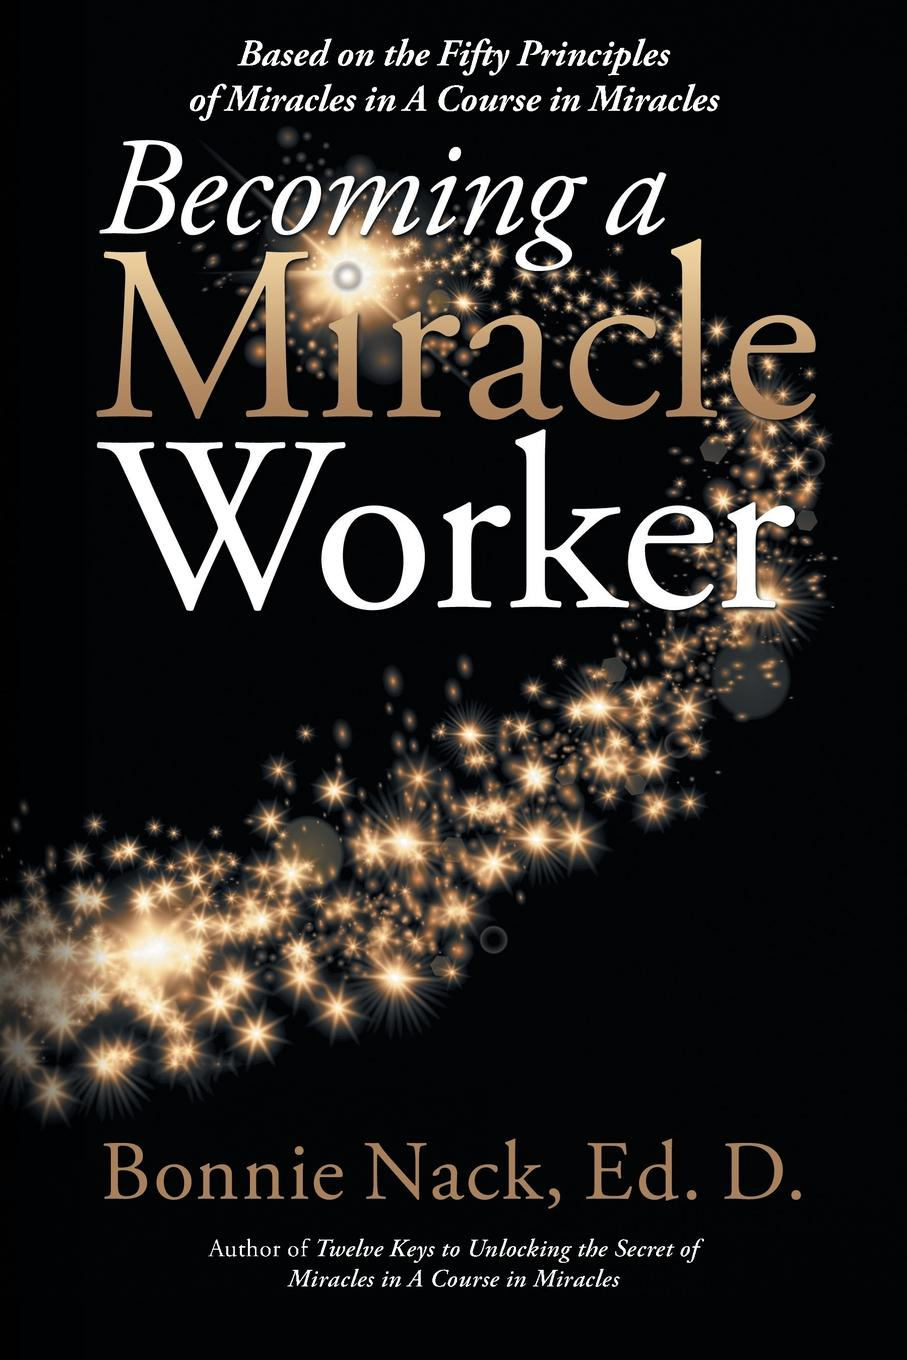 Фото - Bonnie Nack EdD Becoming a Miracle Worker. Based on the Fifty Principles of Miracles in a Course in Miracles смоки робинсон the miracles soul legends smokey robinson